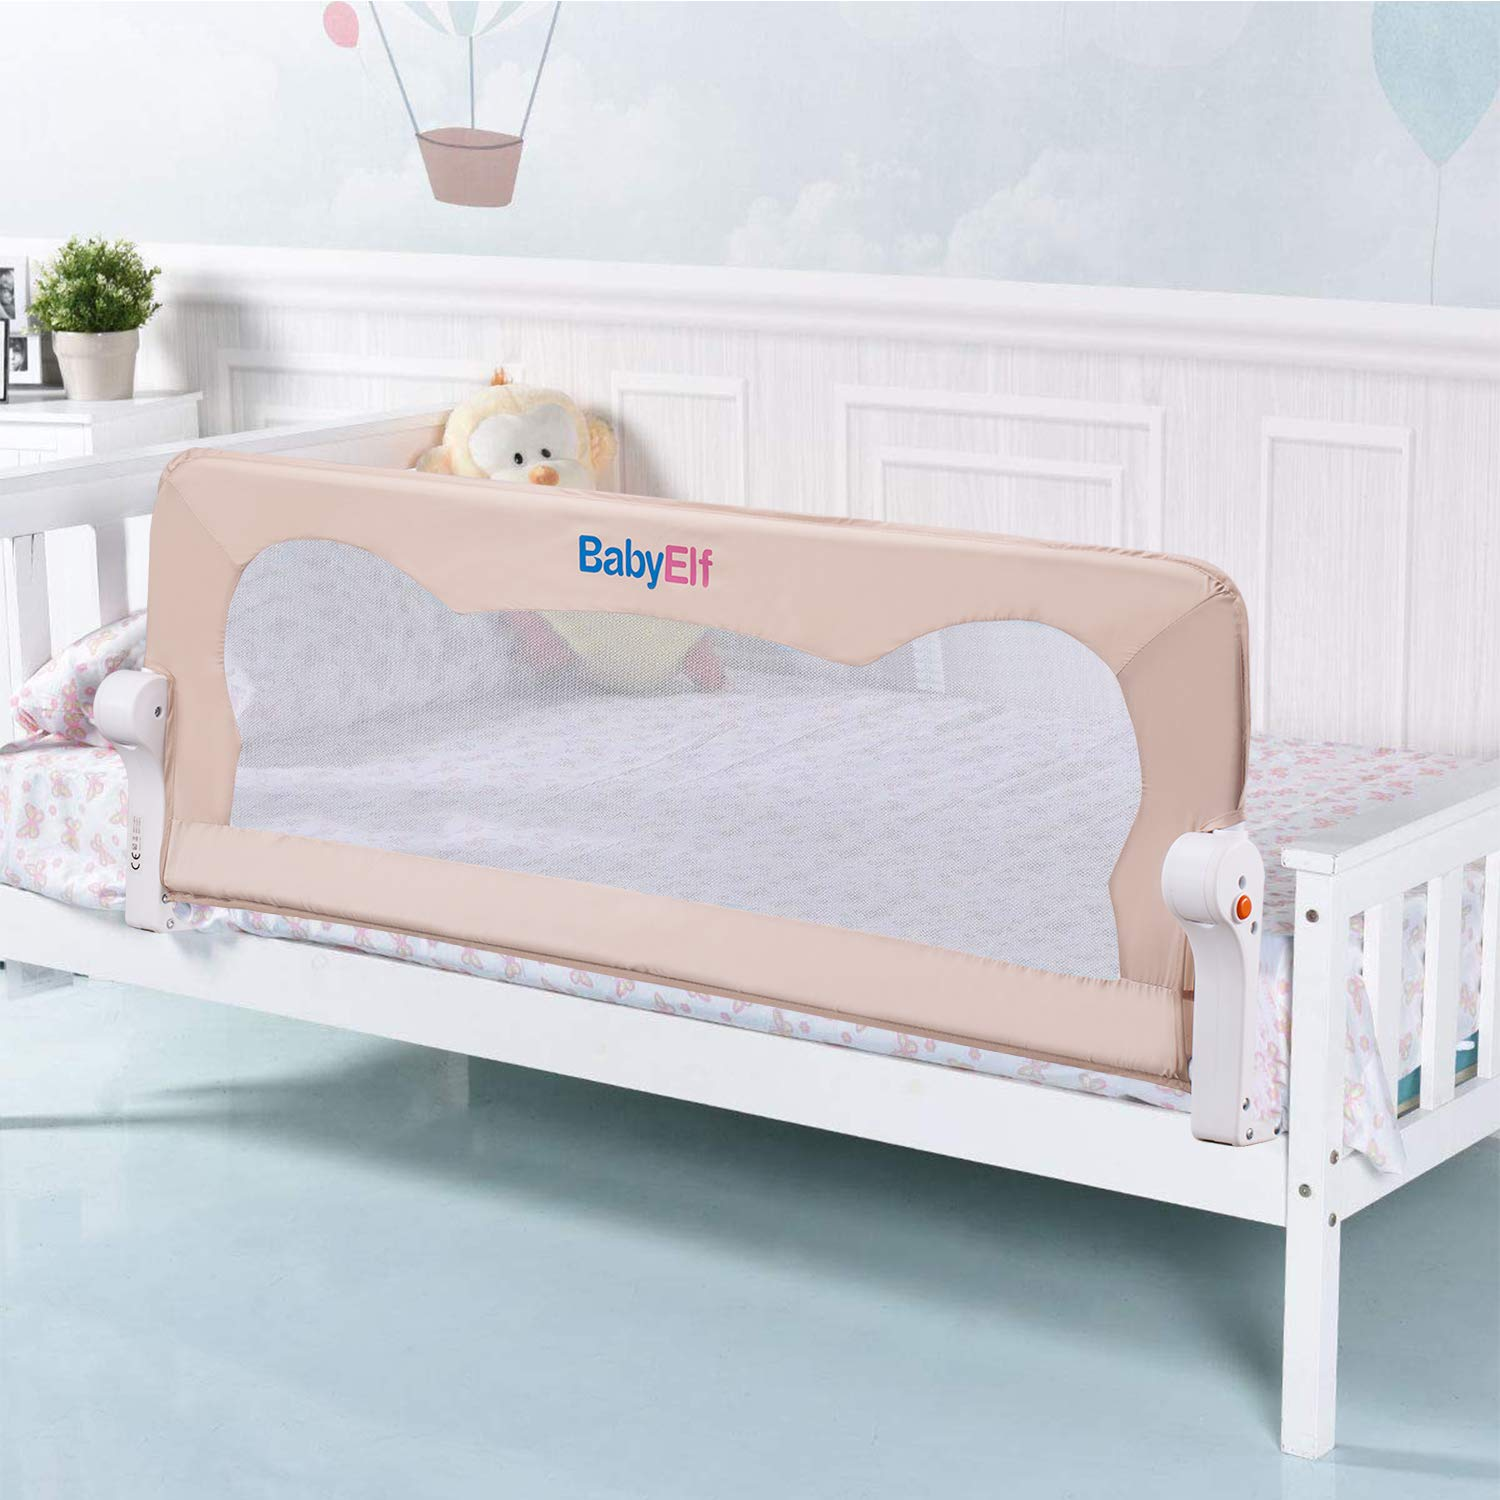 Bed Rails for Toddlers 47 inch - BABY ELF Swing Down Safety Bedrail - Portable Bed Guard for Kids Twin, Double, Full Size Queen & King Mattress (Beige)